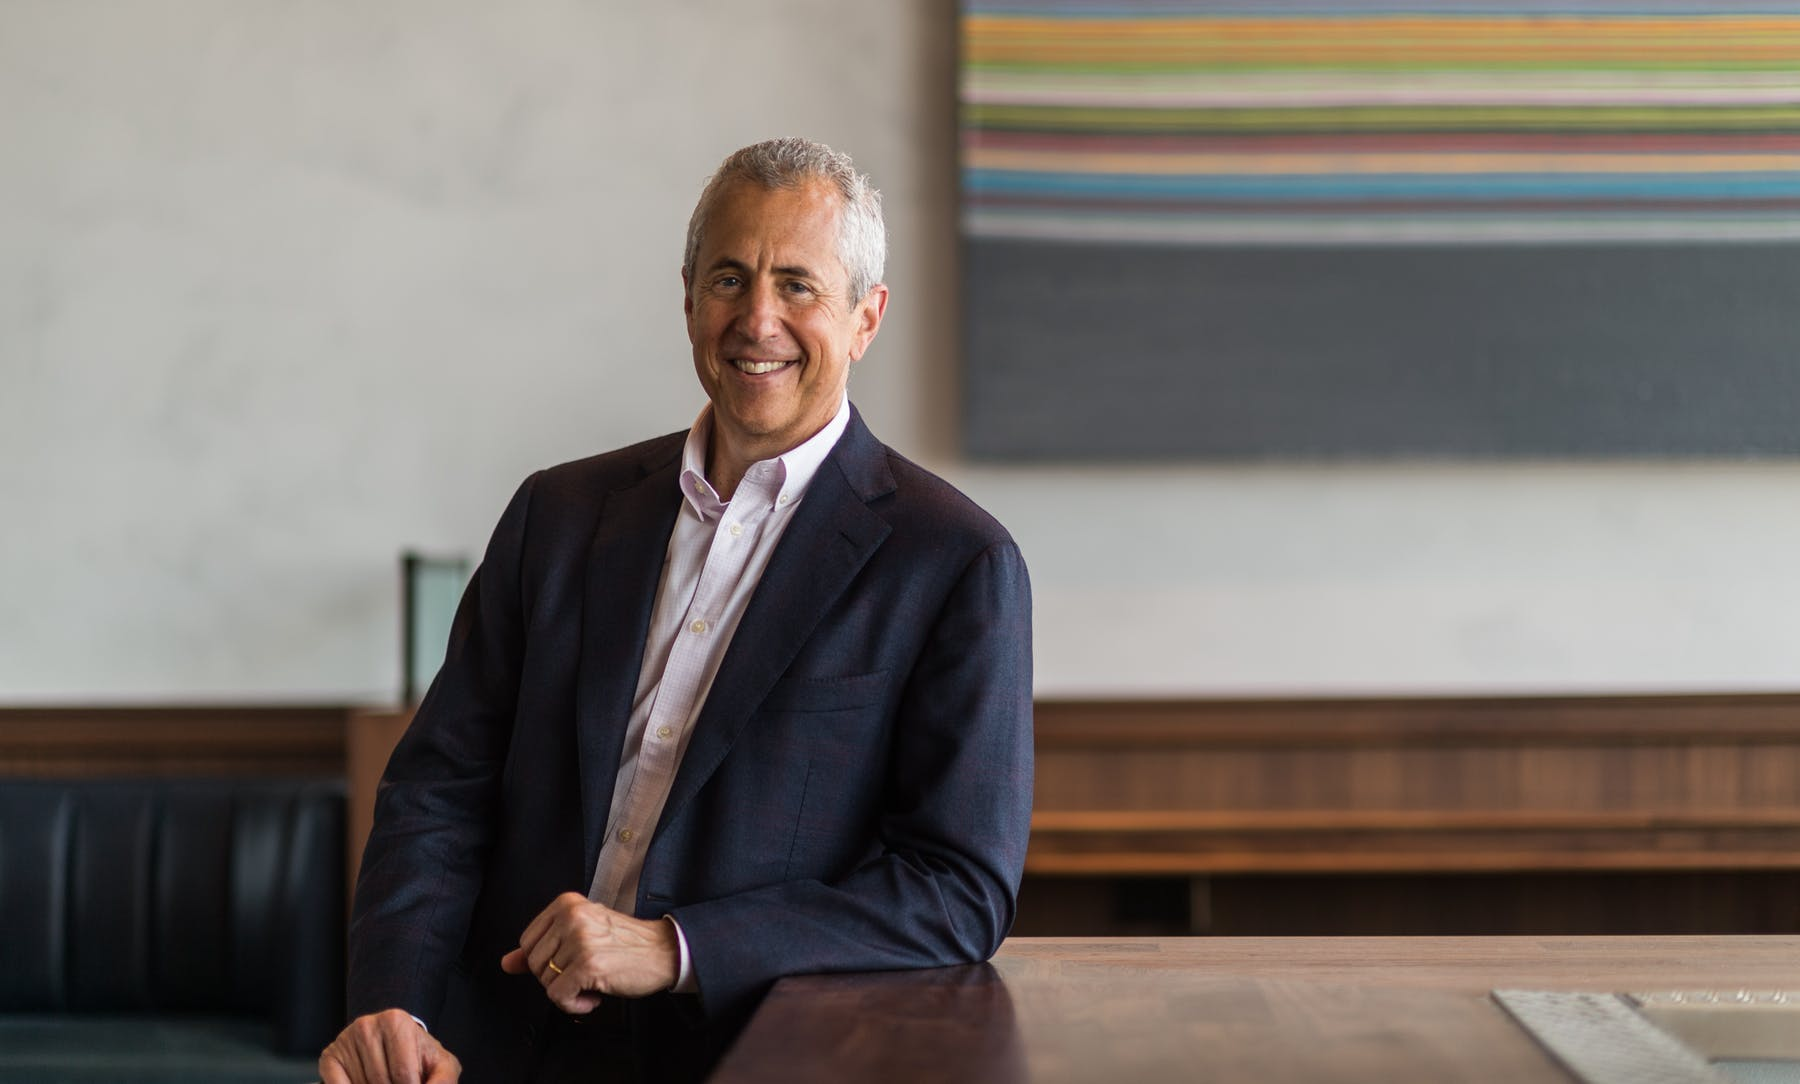 Founder & CEO - Danny Meyer